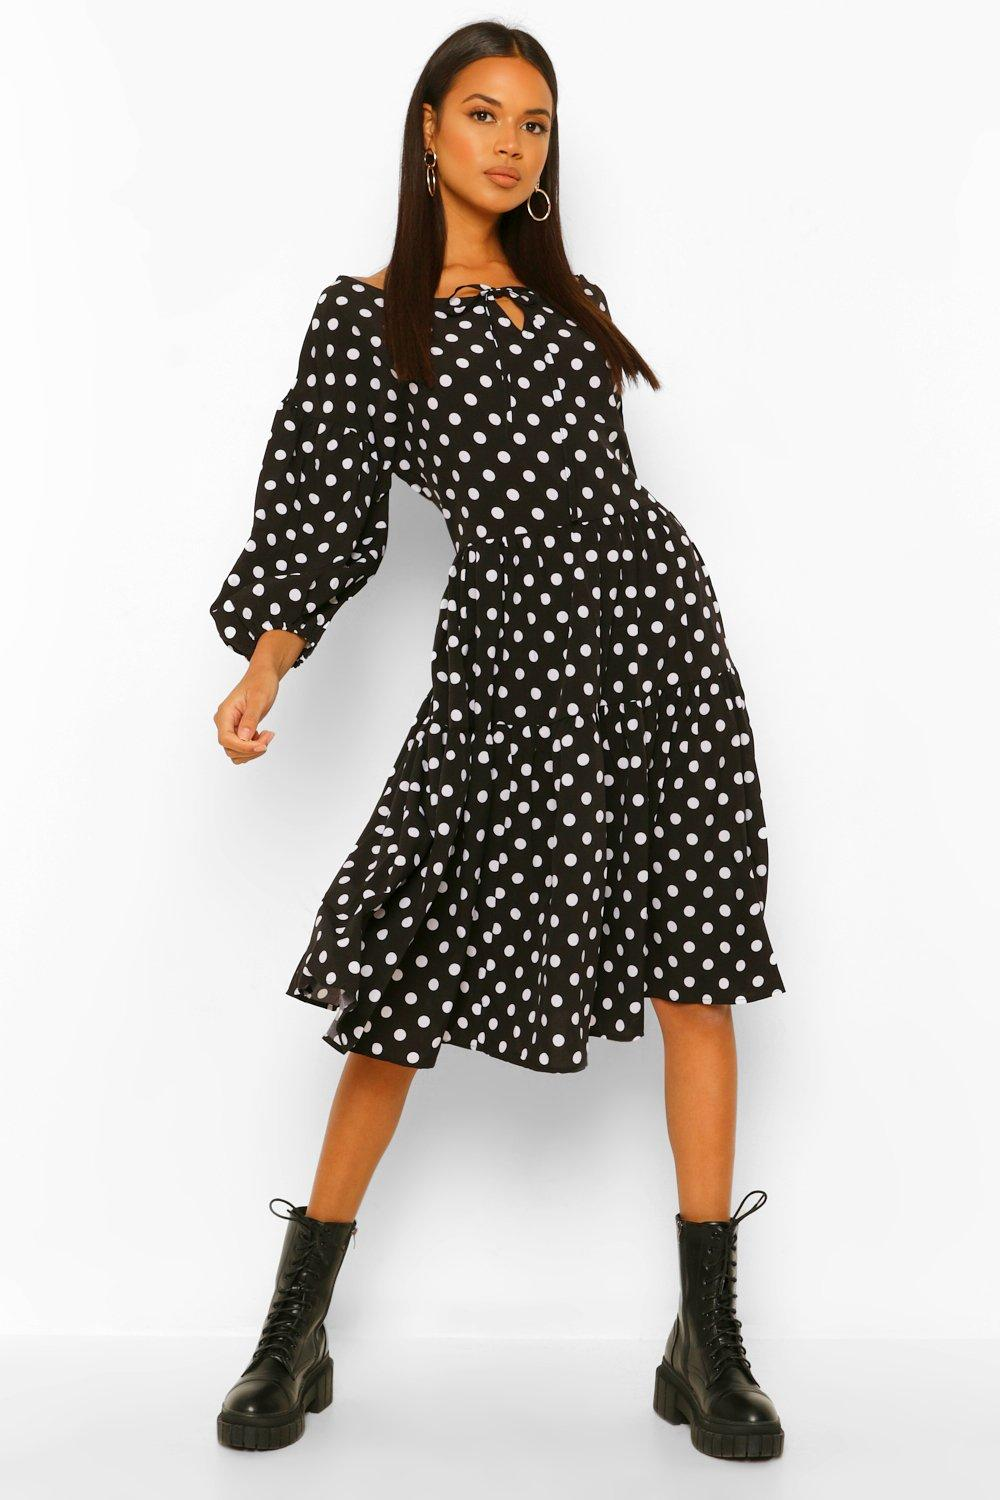 1940s Dress Styles Womens Polka Dot Oversized Midi Smock Dress - Black - 12 $20.00 AT vintagedancer.com